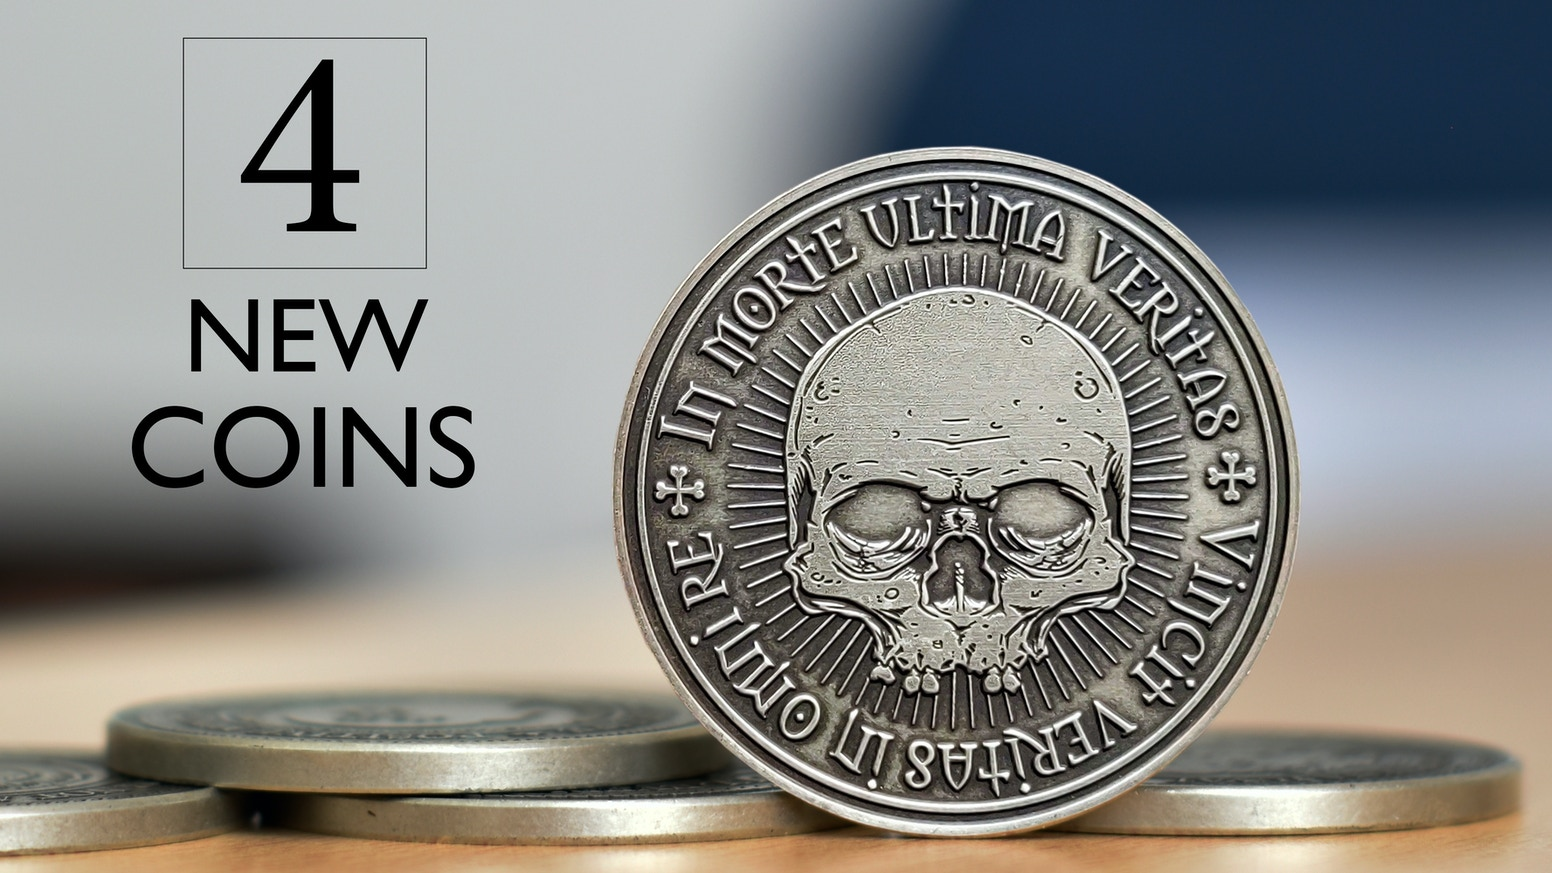 Edc Reminder Coins New Designs By Cupisco Kickstarter